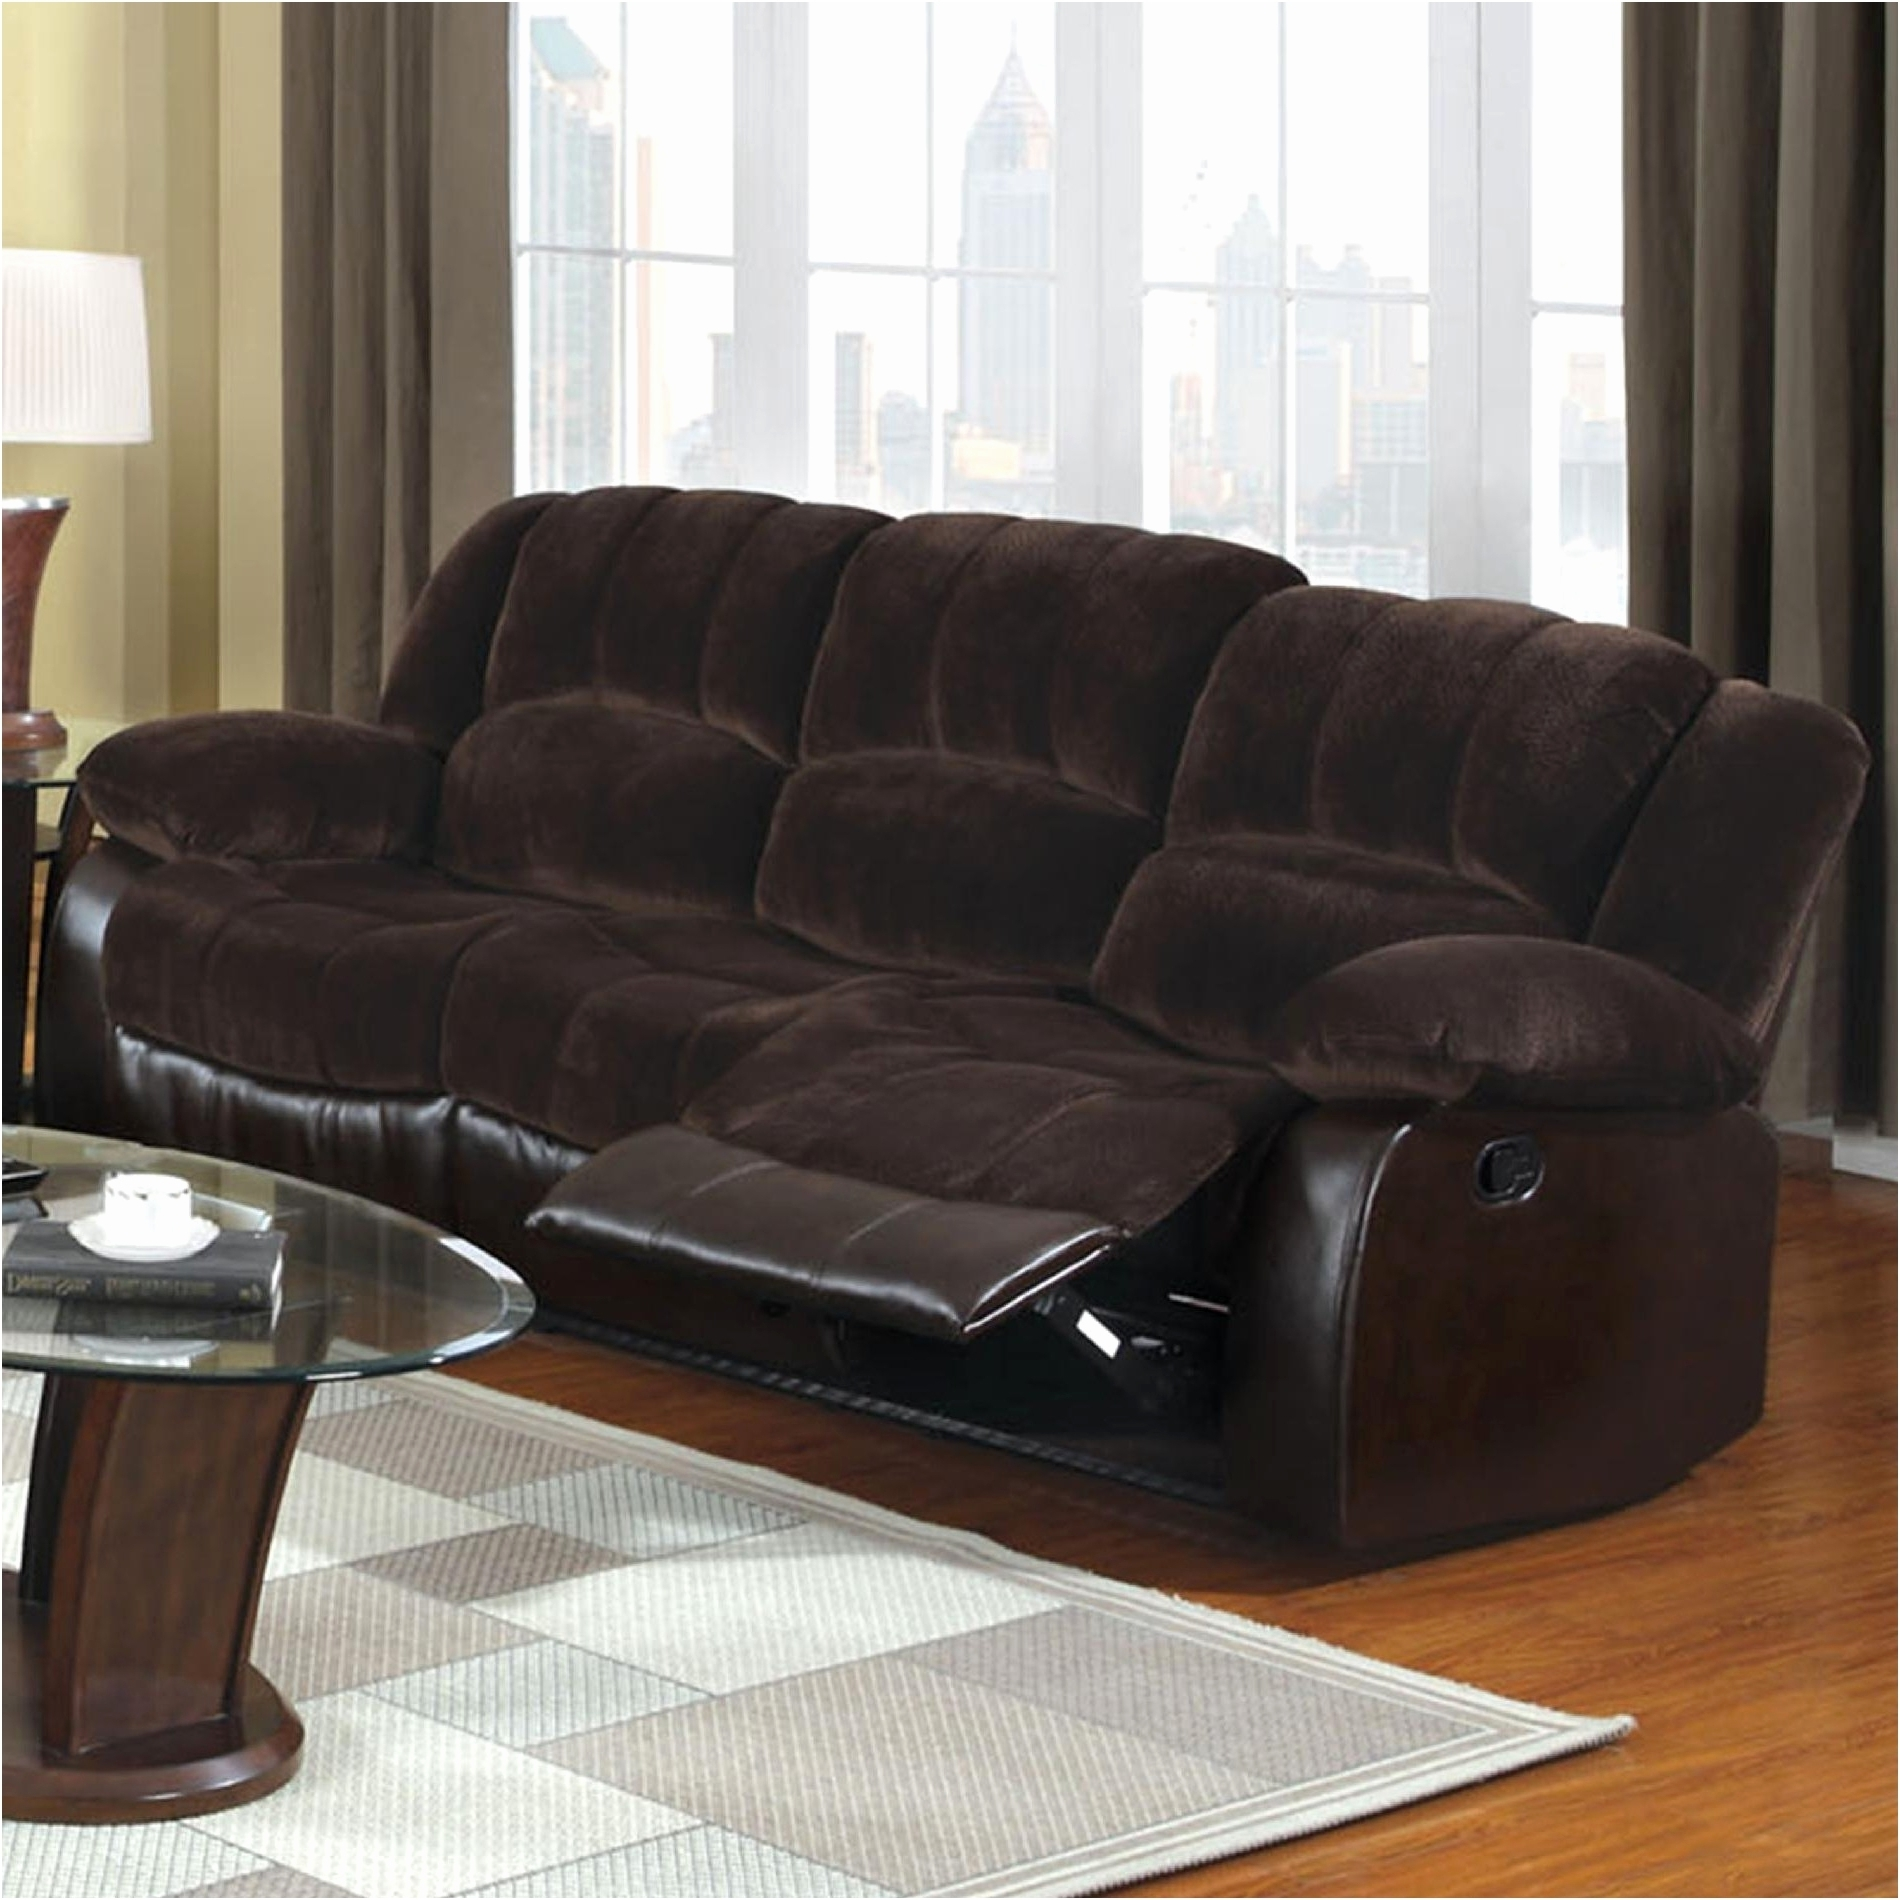 Fresh Sears Leather Sofa New – Intuisiblog Throughout 2018 Sears Sectional Sofas (View 3 of 15)